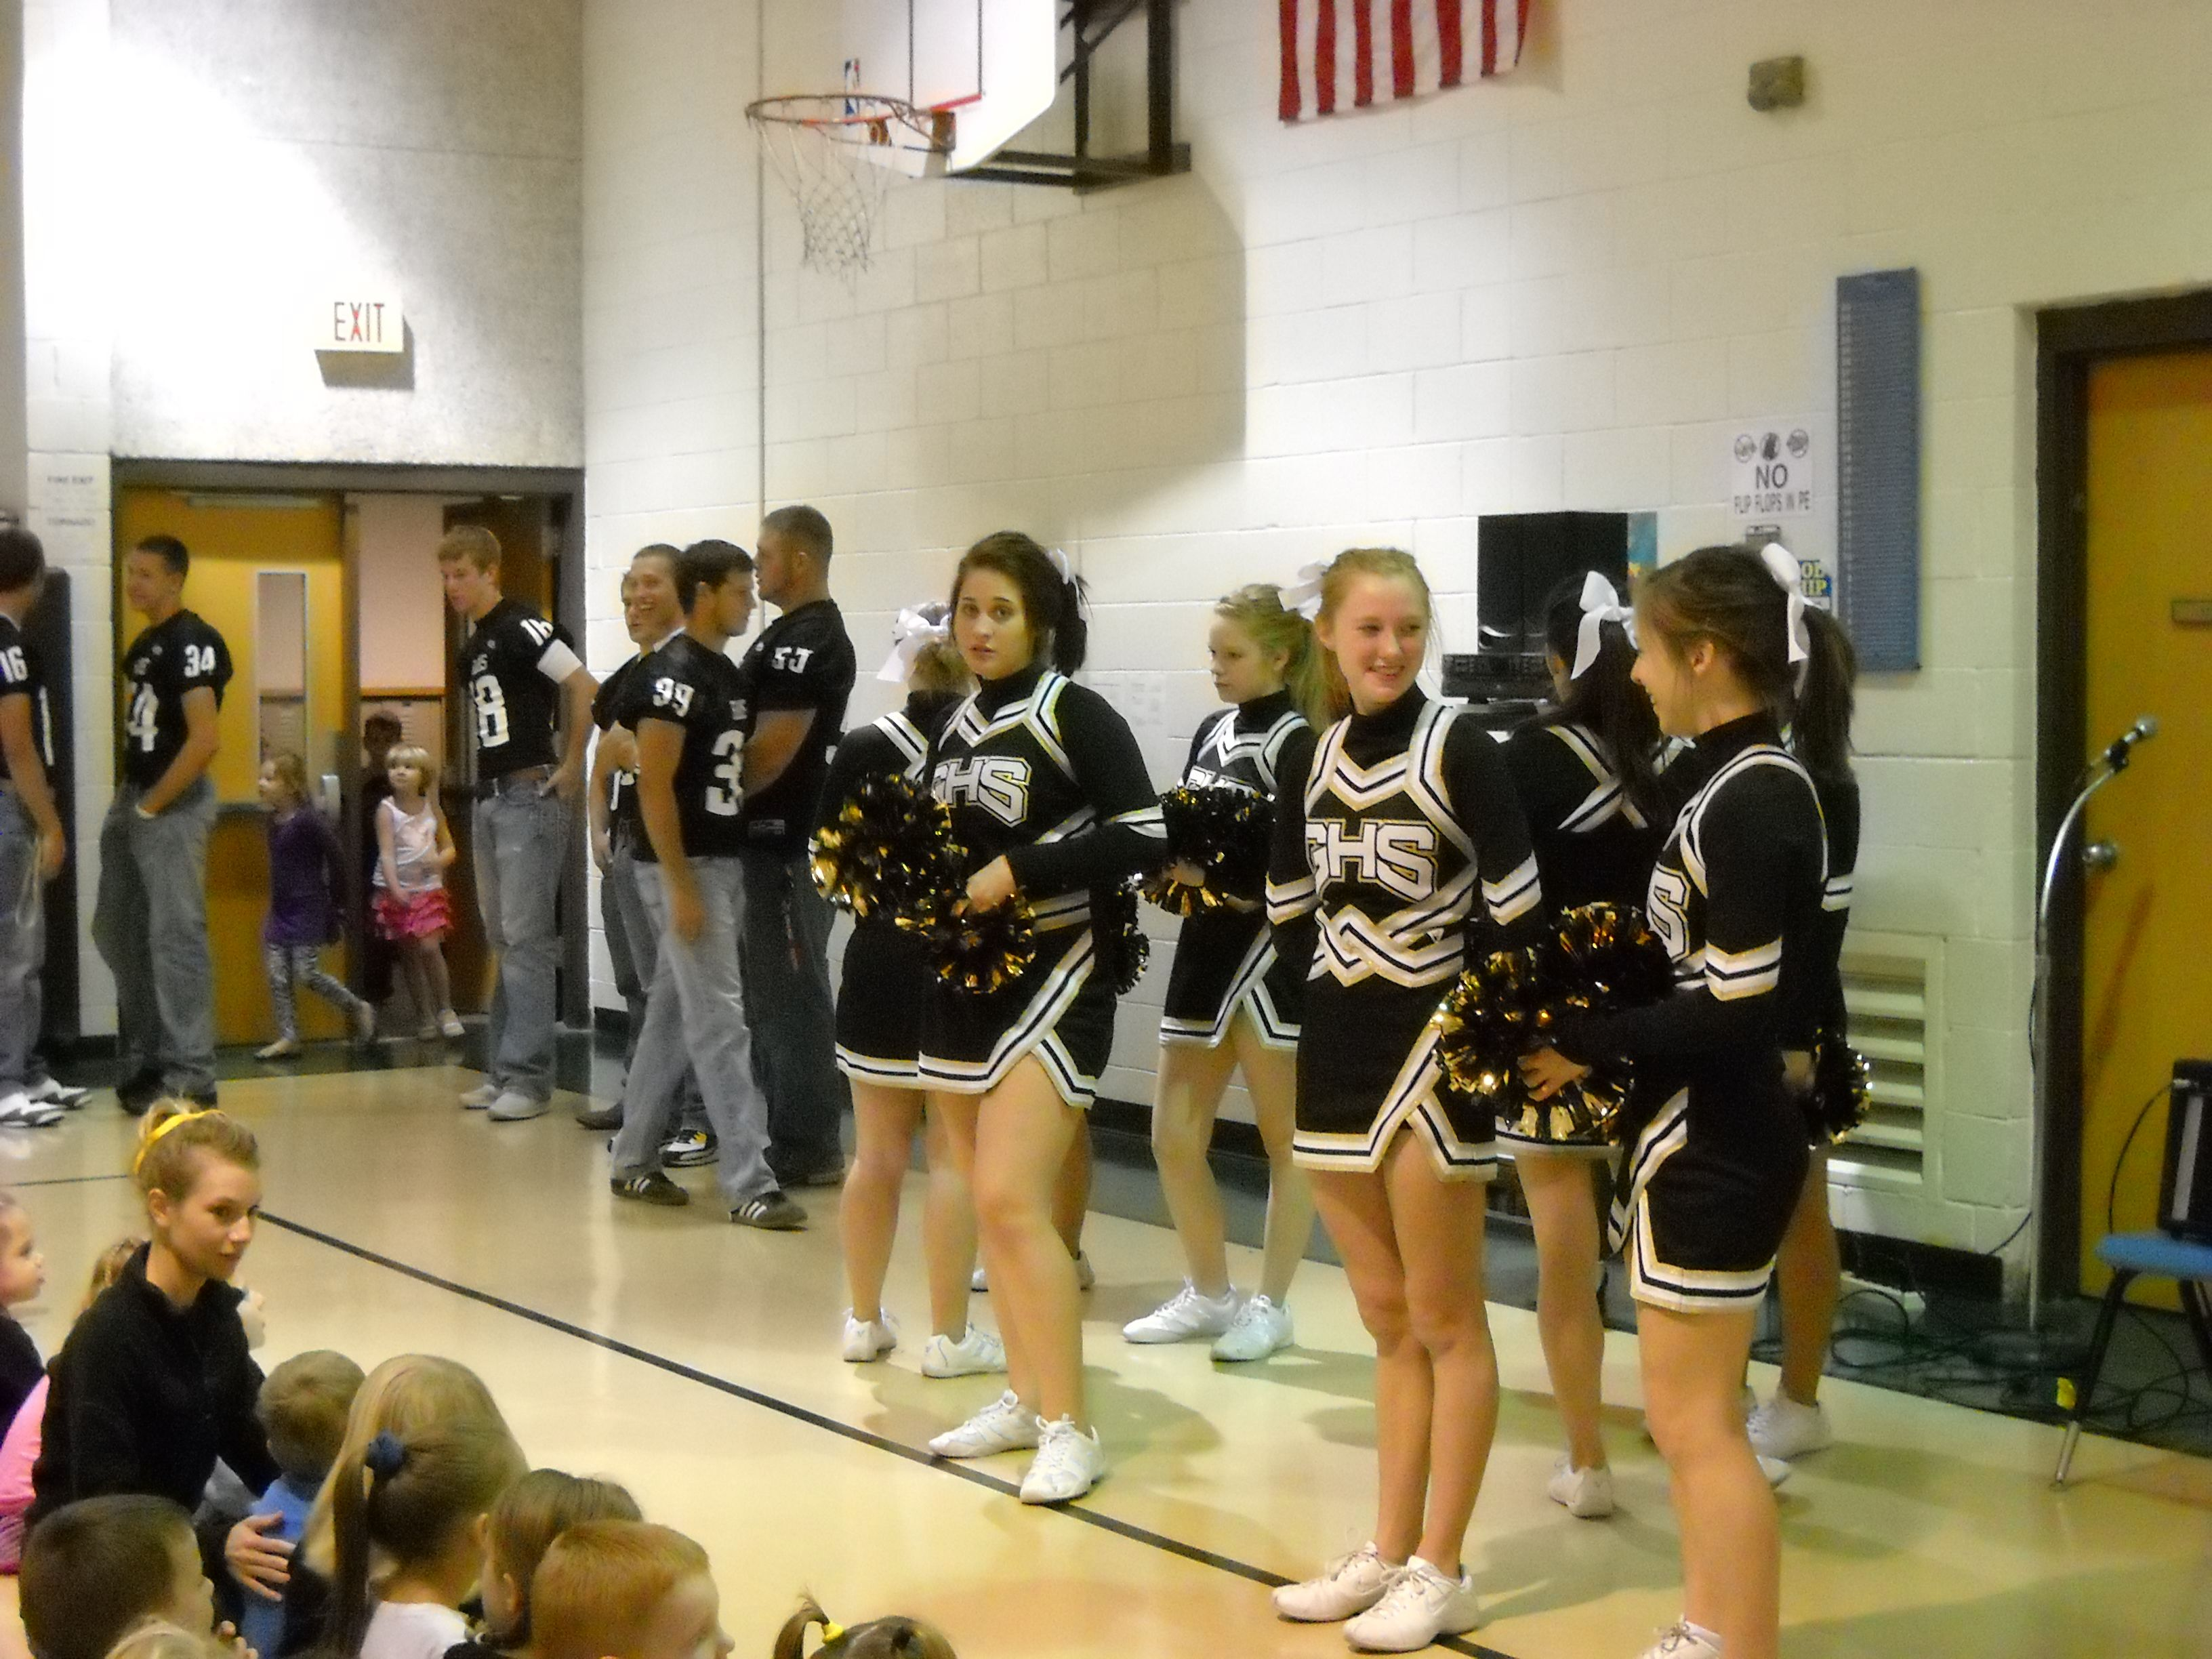 Cheerleaders And Football Players At Our Homecoming Pep Rally At The Elementary School Cheerleading Pep Rally Homecoming